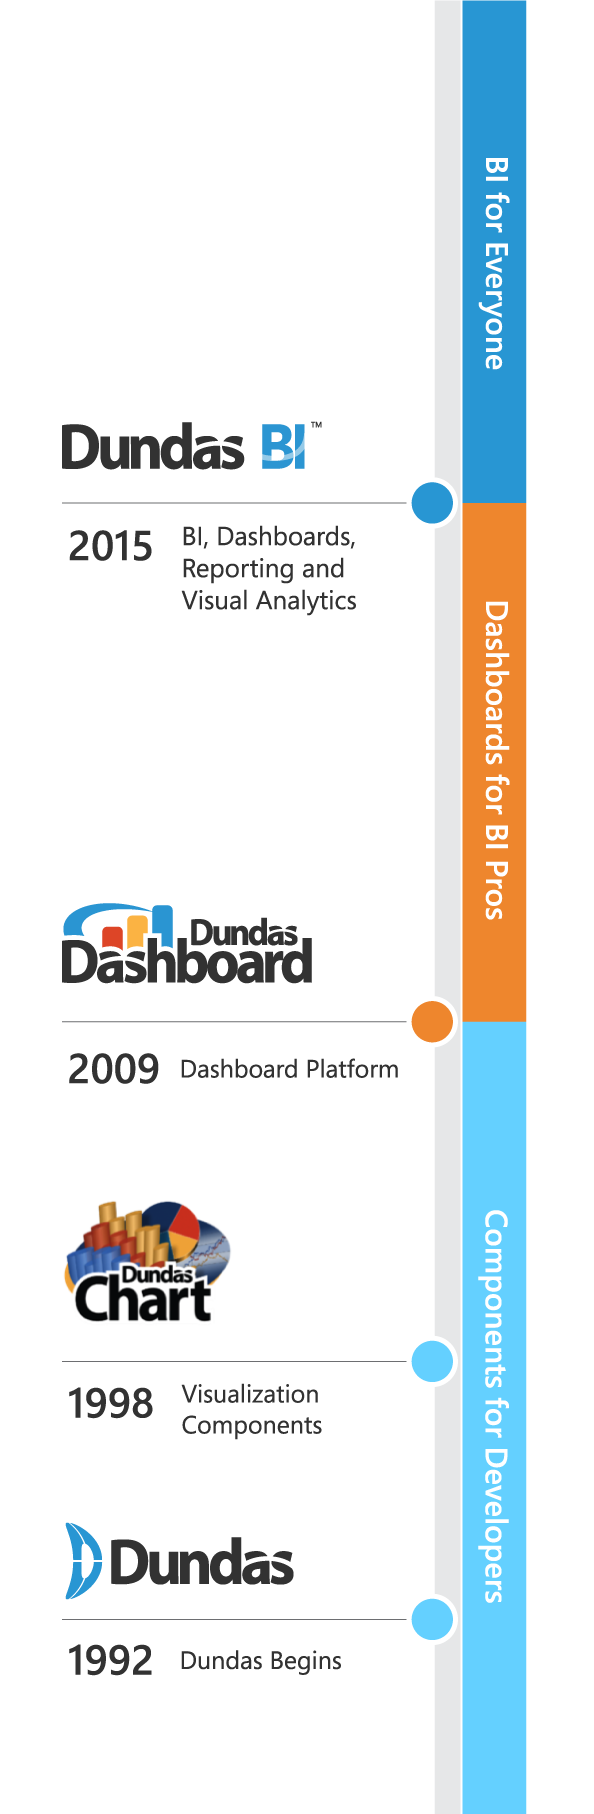 Dundas Data Visualization timeline